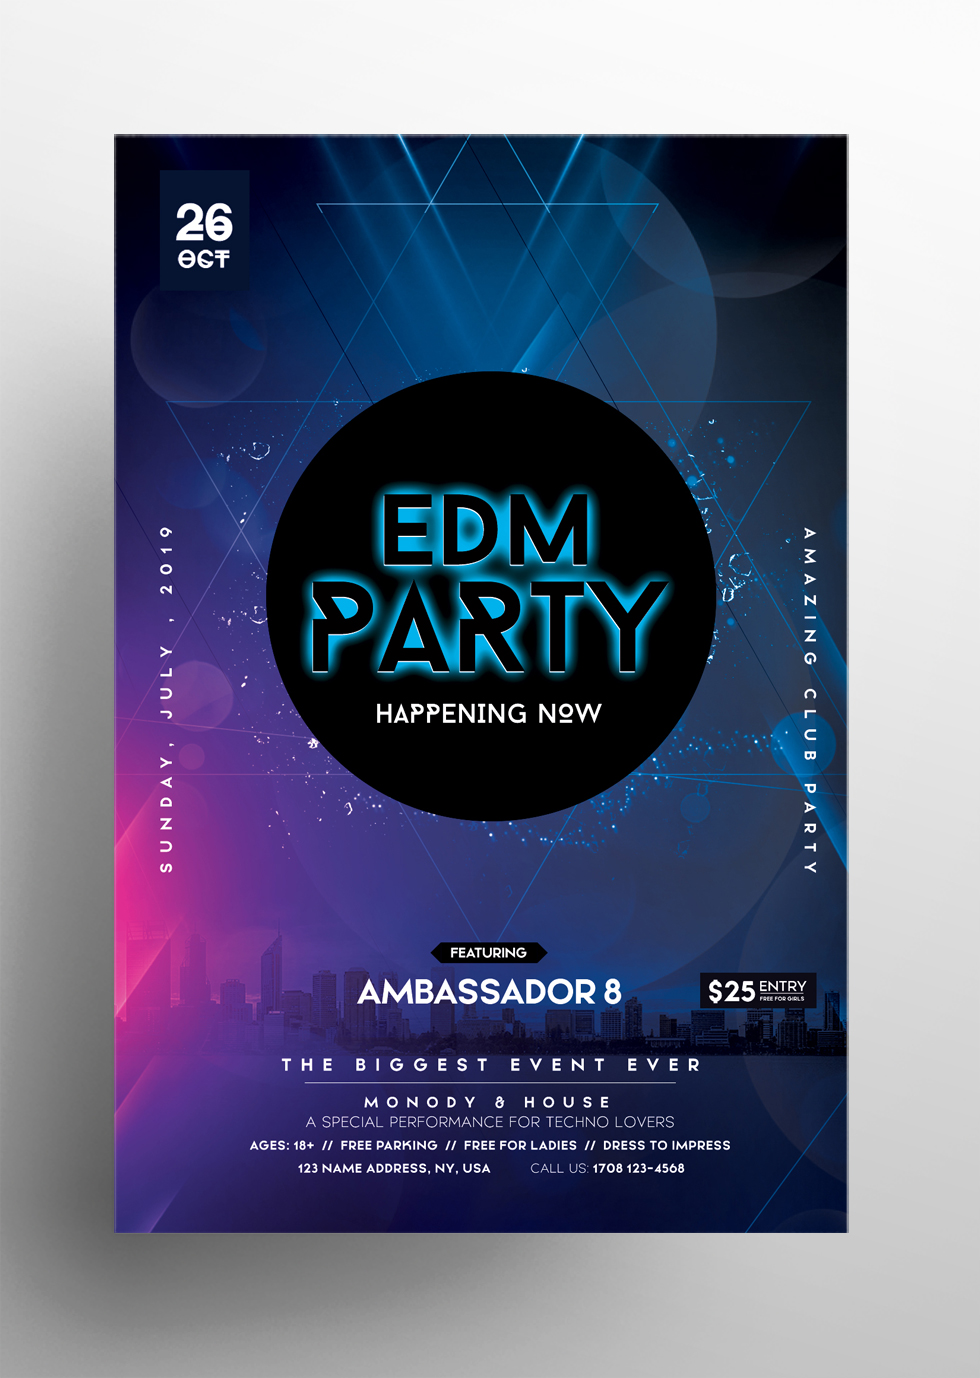 EDM Party - Free Club PSD Flyer Template